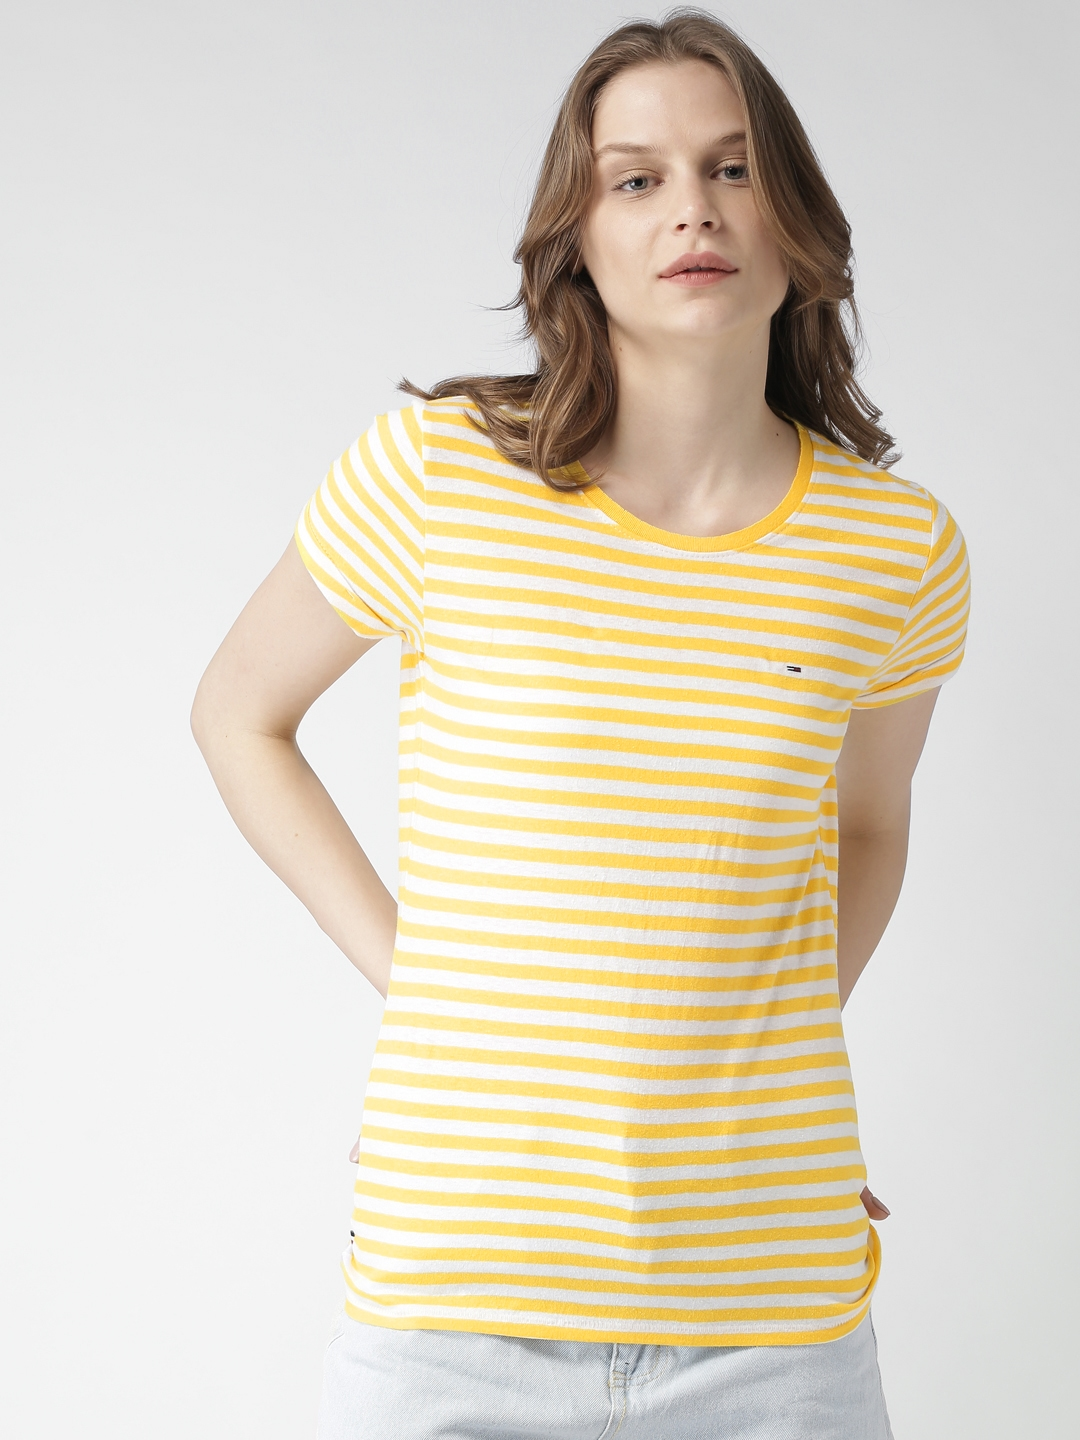 90169fe4 Buy Tommy Hilfiger Women Yellow & White Striped Round Neck T Shirt ...